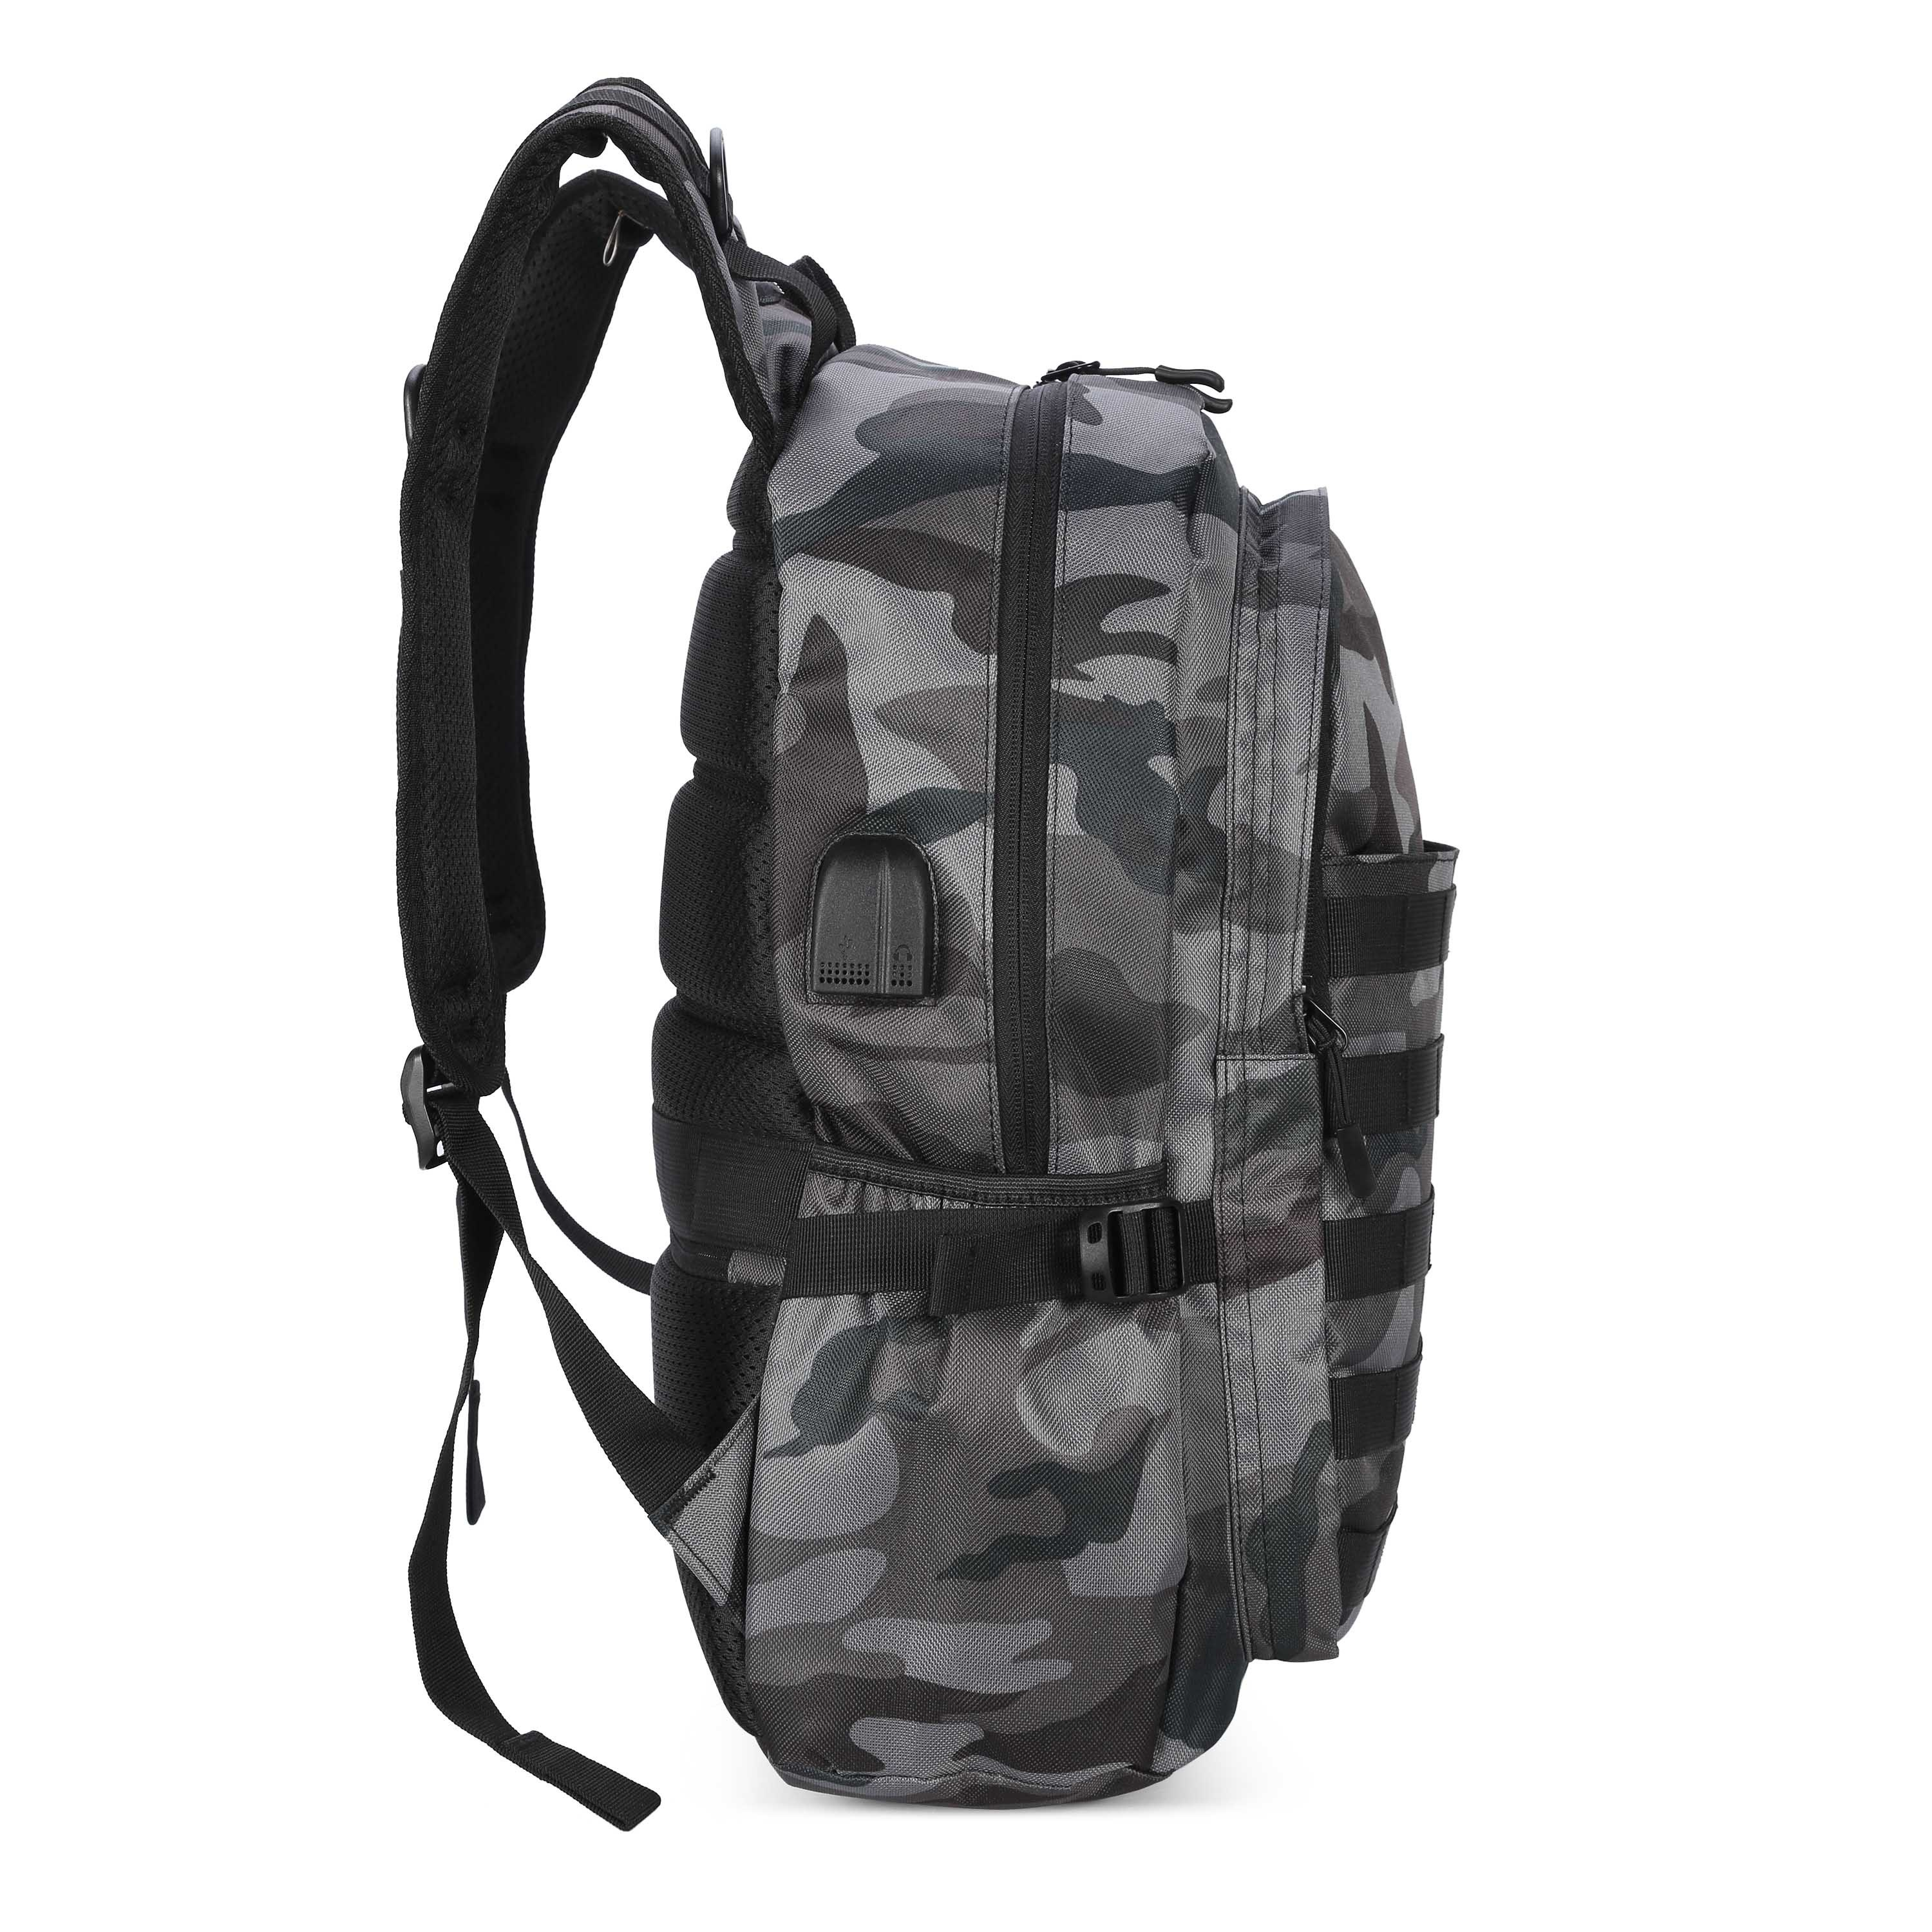 Ericdress Camouflage Backpack Army Bag